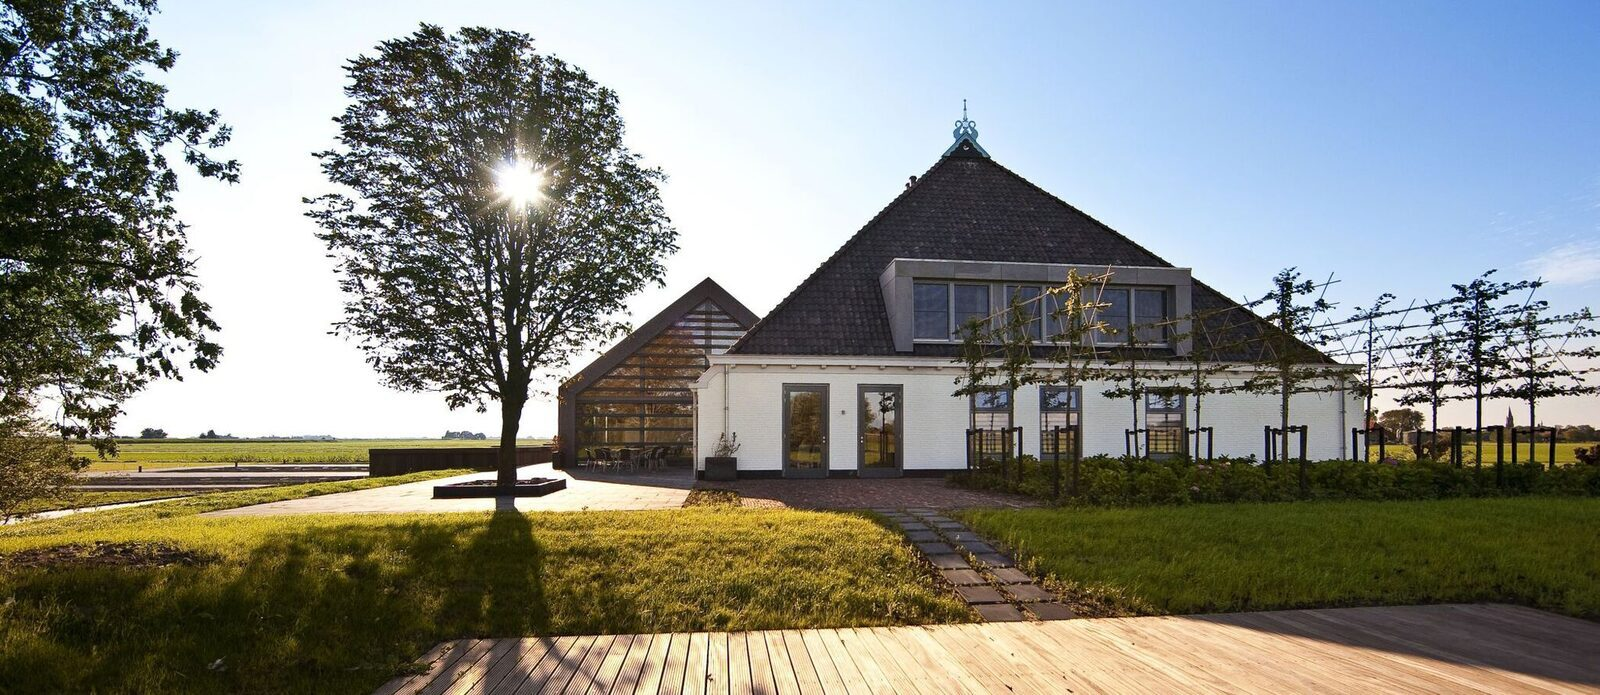 Groepen Nl 800 Group Accommodation For Small And Large Groups